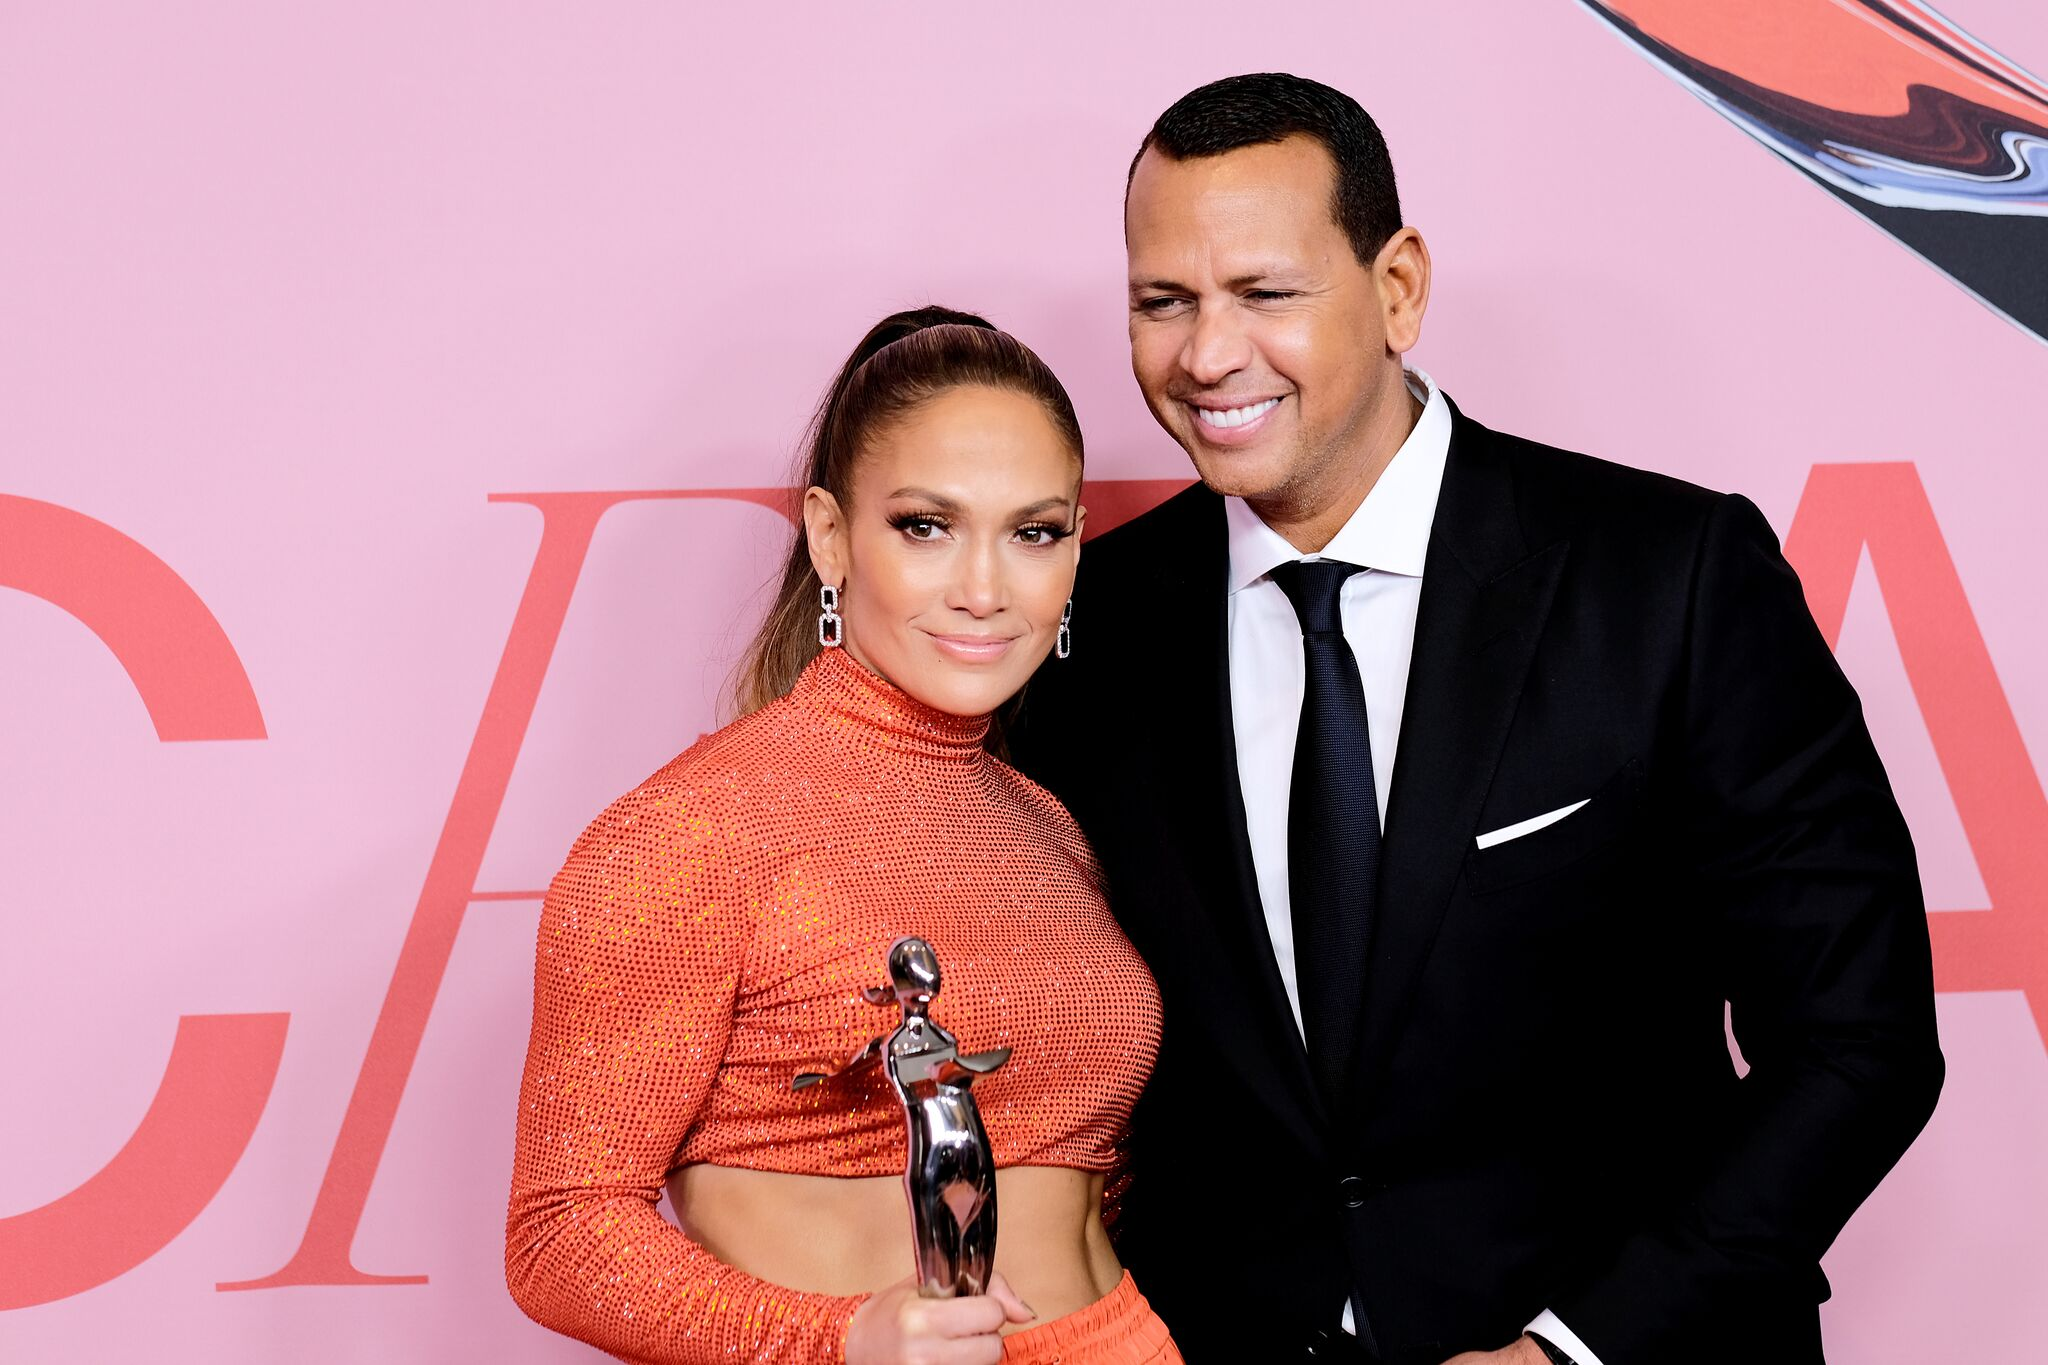 Jennifer Lopez poses with the Fashion Icon Award and Alex Rodriguez during Winners Walk during the CFDA Fashion Awards at the Brooklyn Museum of Art on June 03, 2019  | Photo: Getty Images